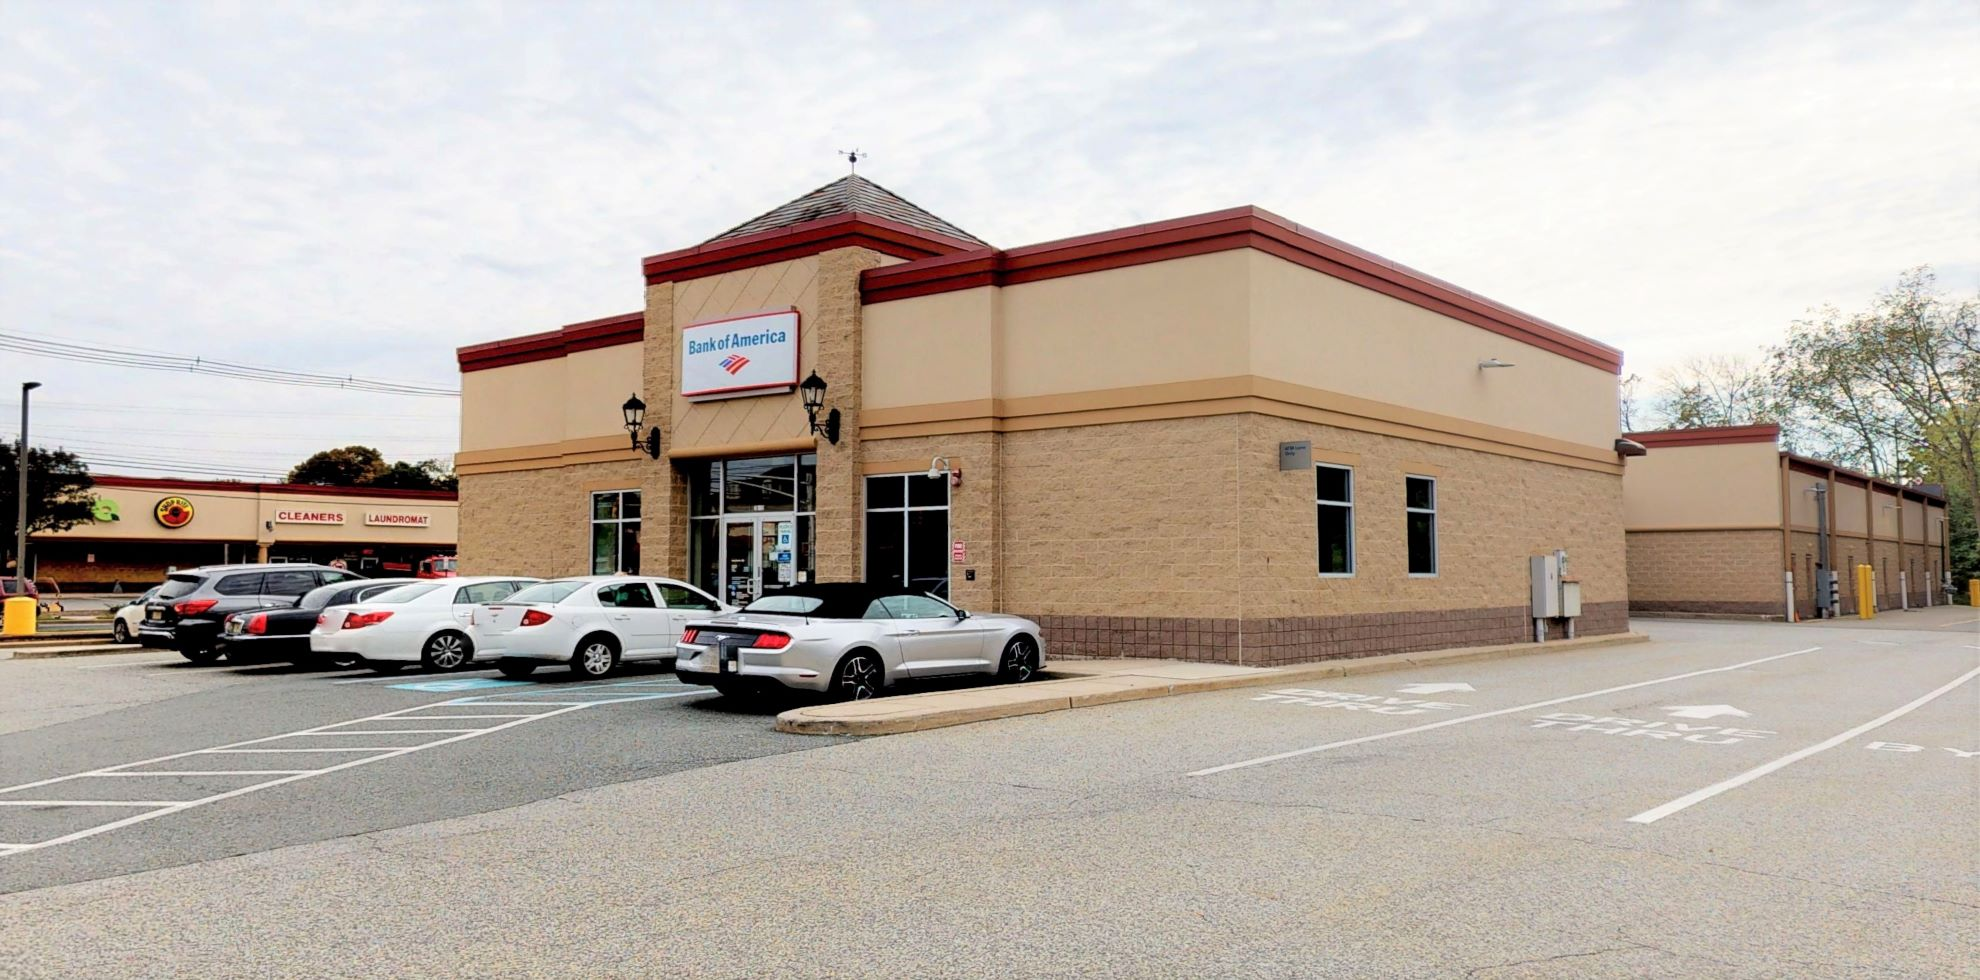 Bank of America financial center with drive-thru ATM   78 Main St STE 10, Hackettstown, NJ 07840